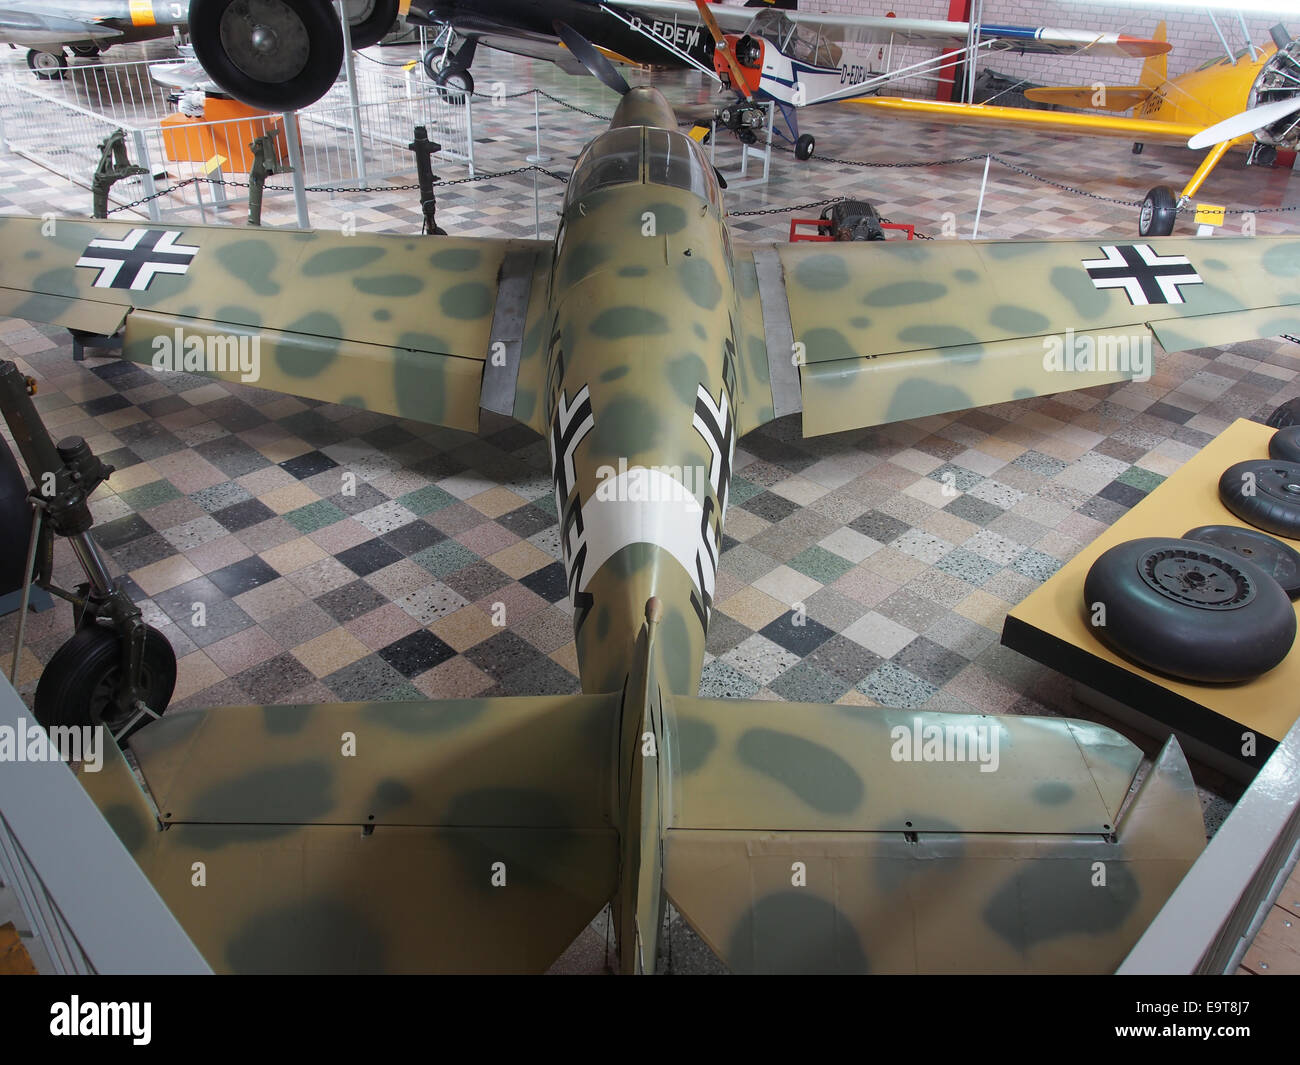 Nord 1002 - German Air Force KG EM at Flugausstellung Hermeskeil, pic2a - Stock Image